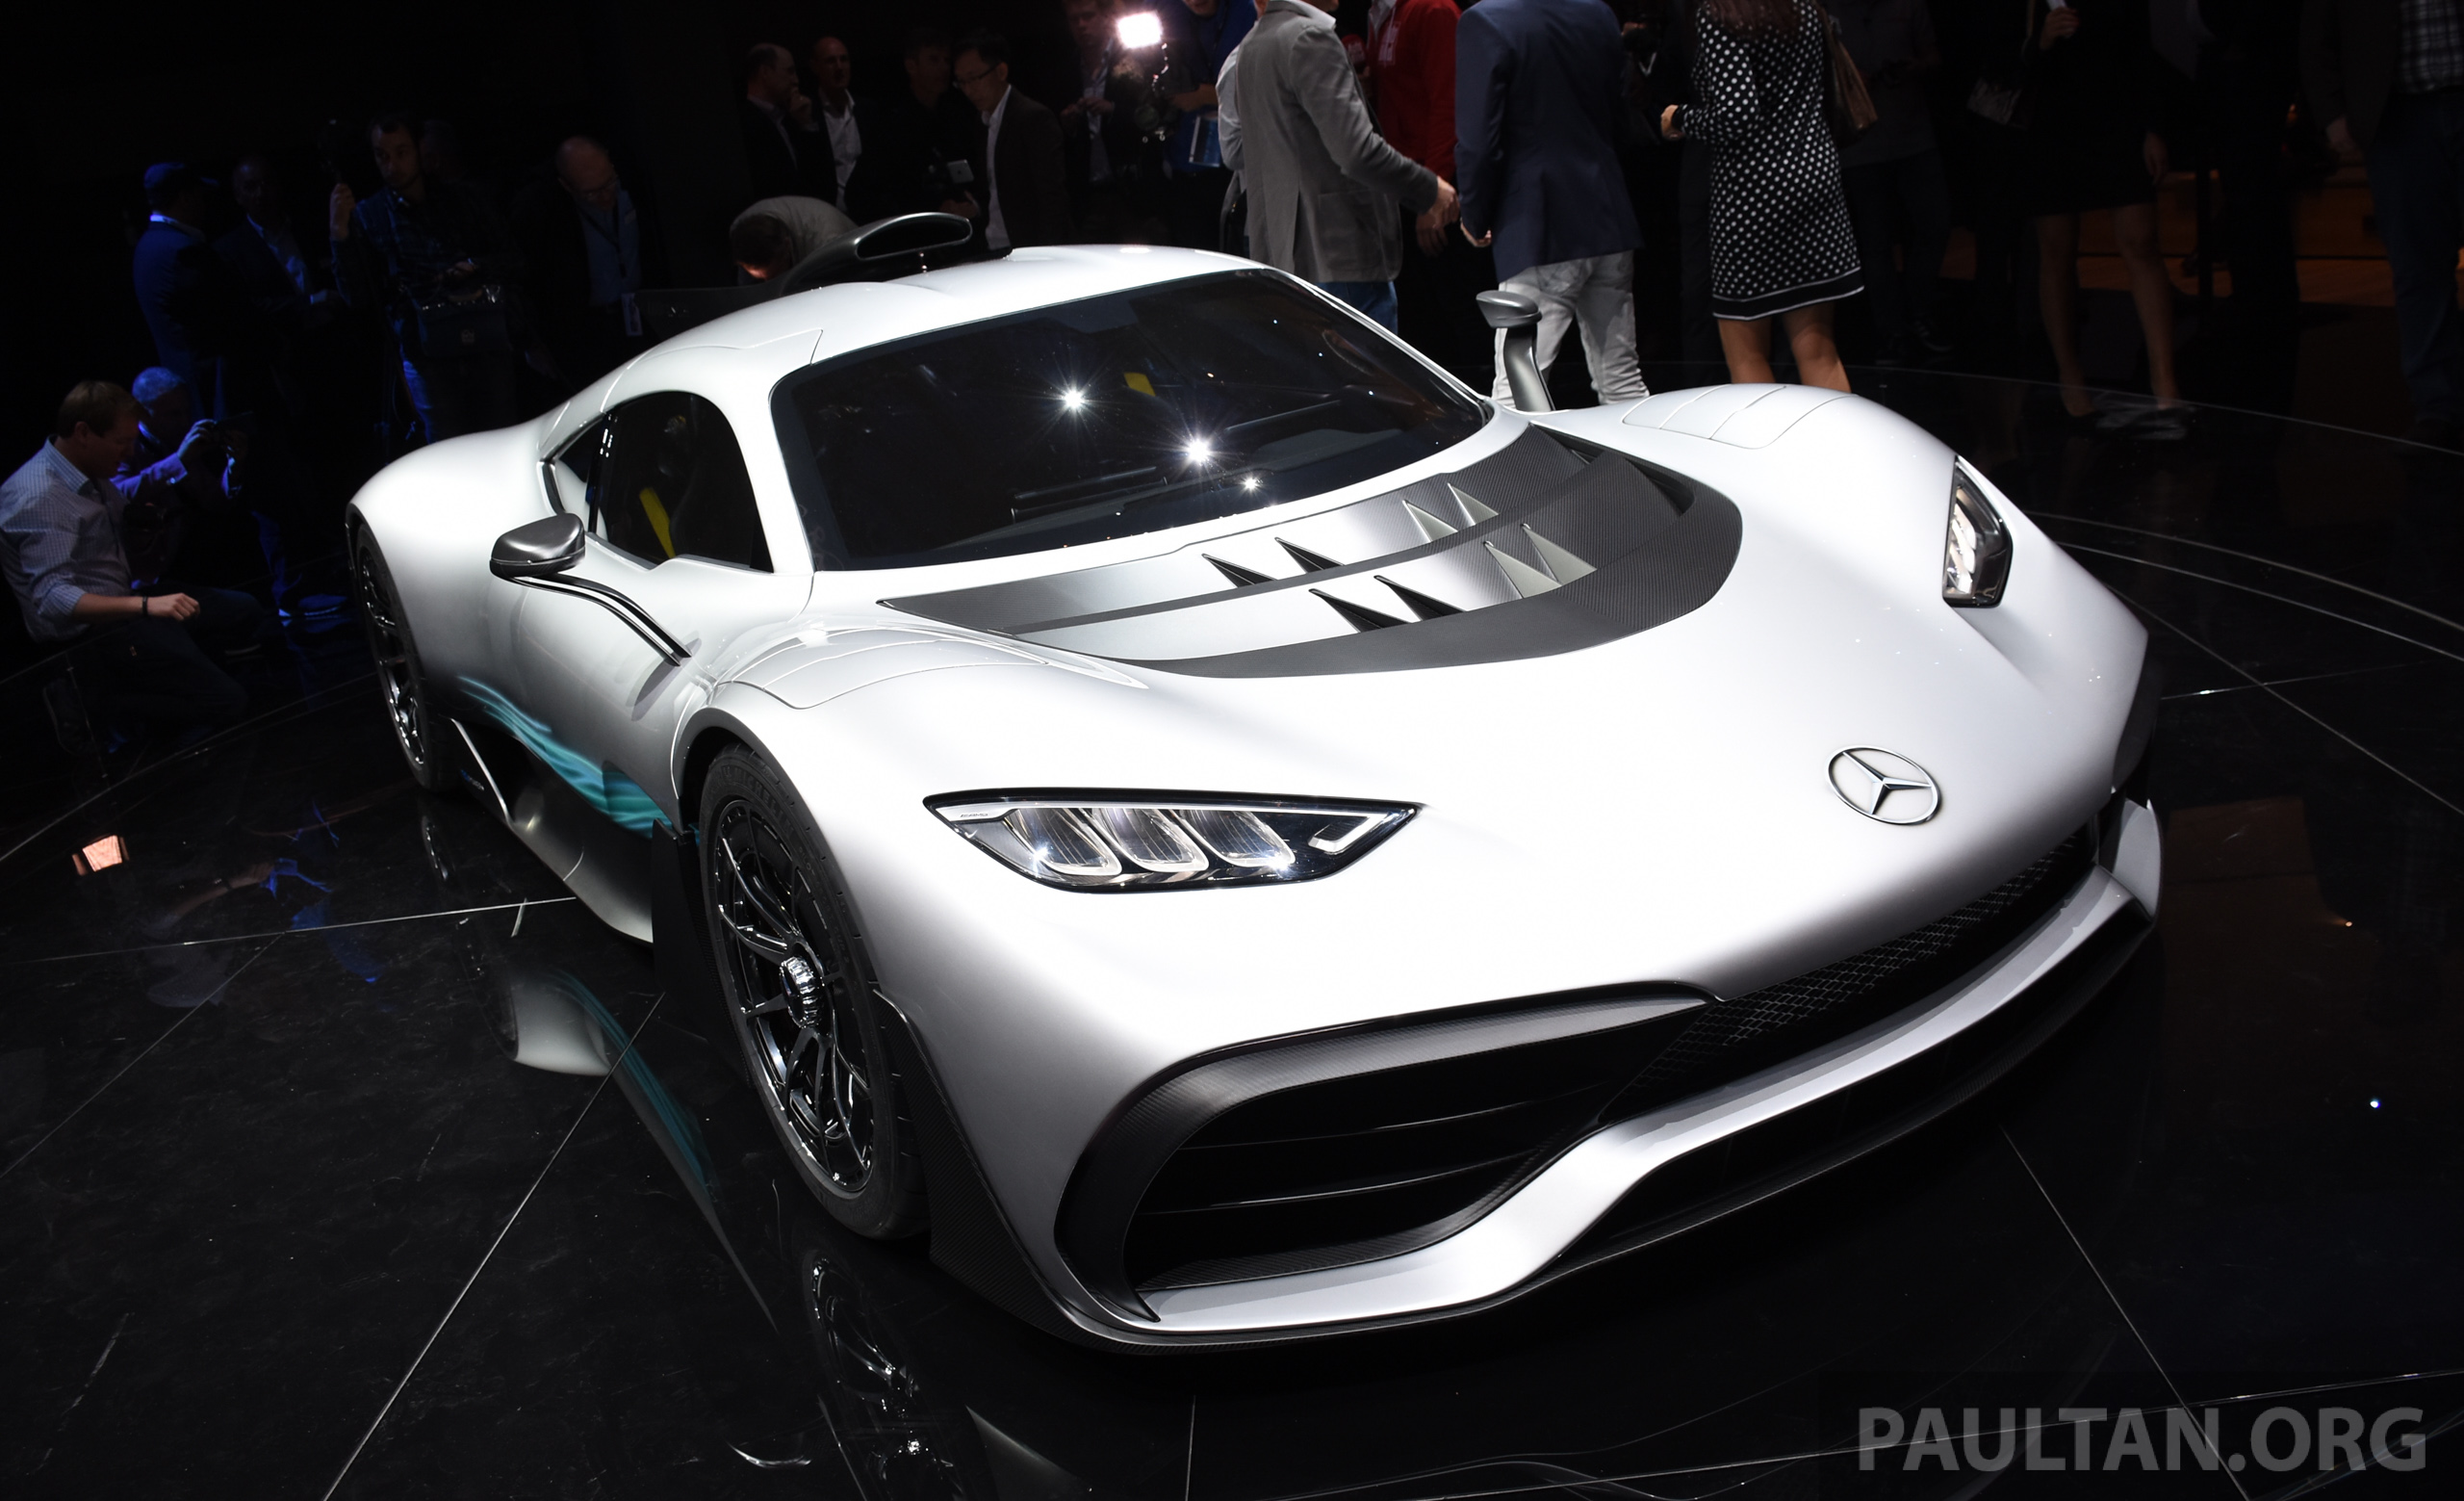 mercedes amg project one hypercar finally unveiled sub 6 seconds 0 200 km h top speed over. Black Bedroom Furniture Sets. Home Design Ideas